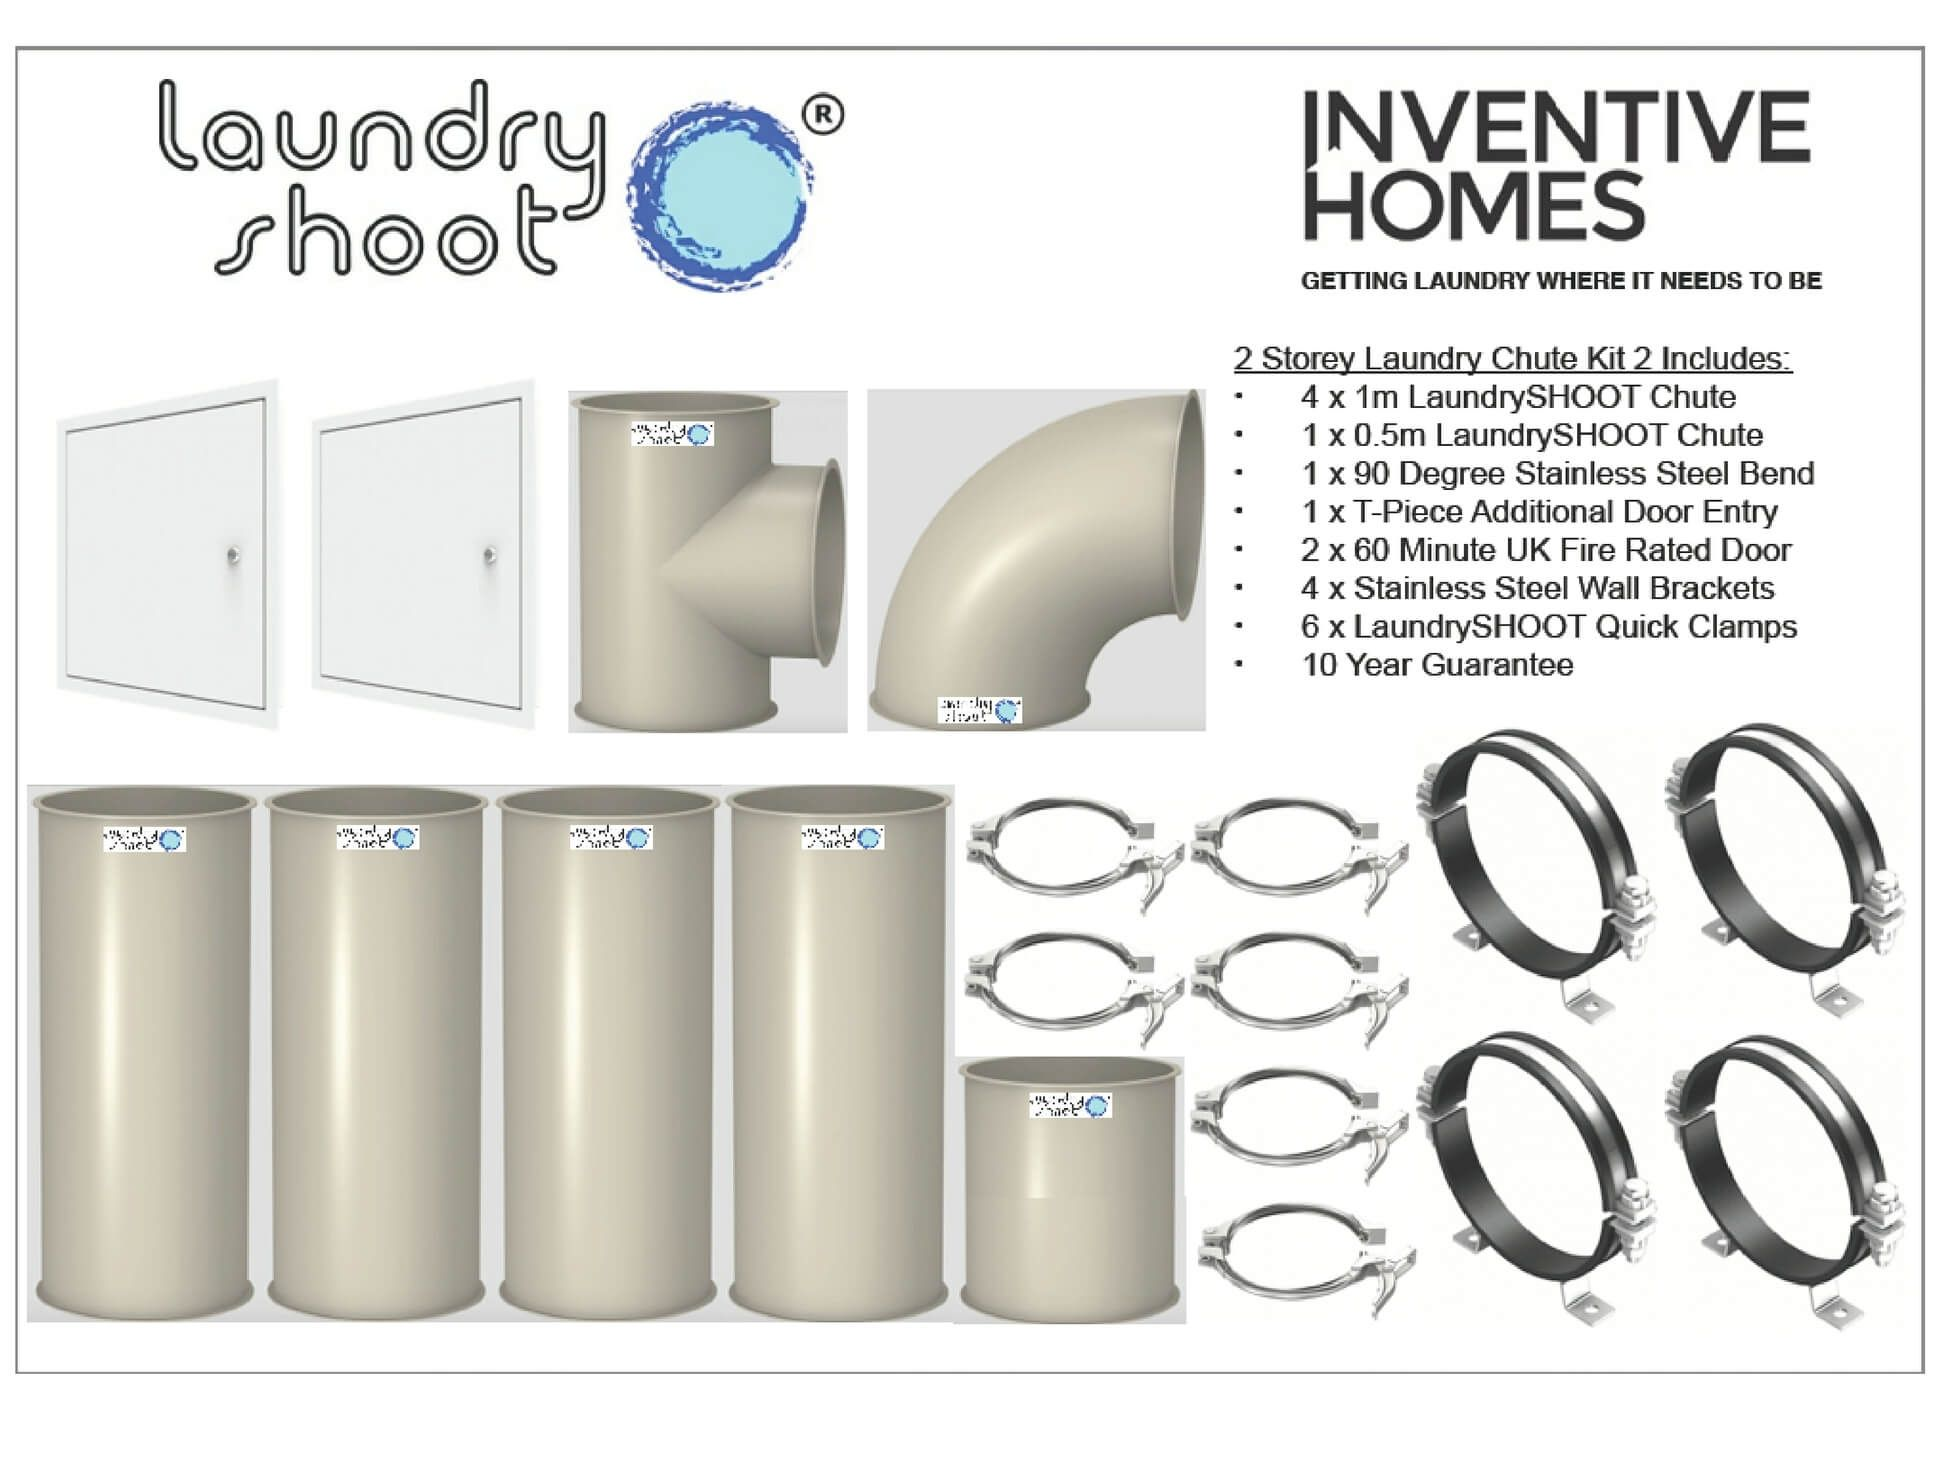 Laundry Shoot Laundry Chute 2 Storey House Kit 2 Inc 2 Entry